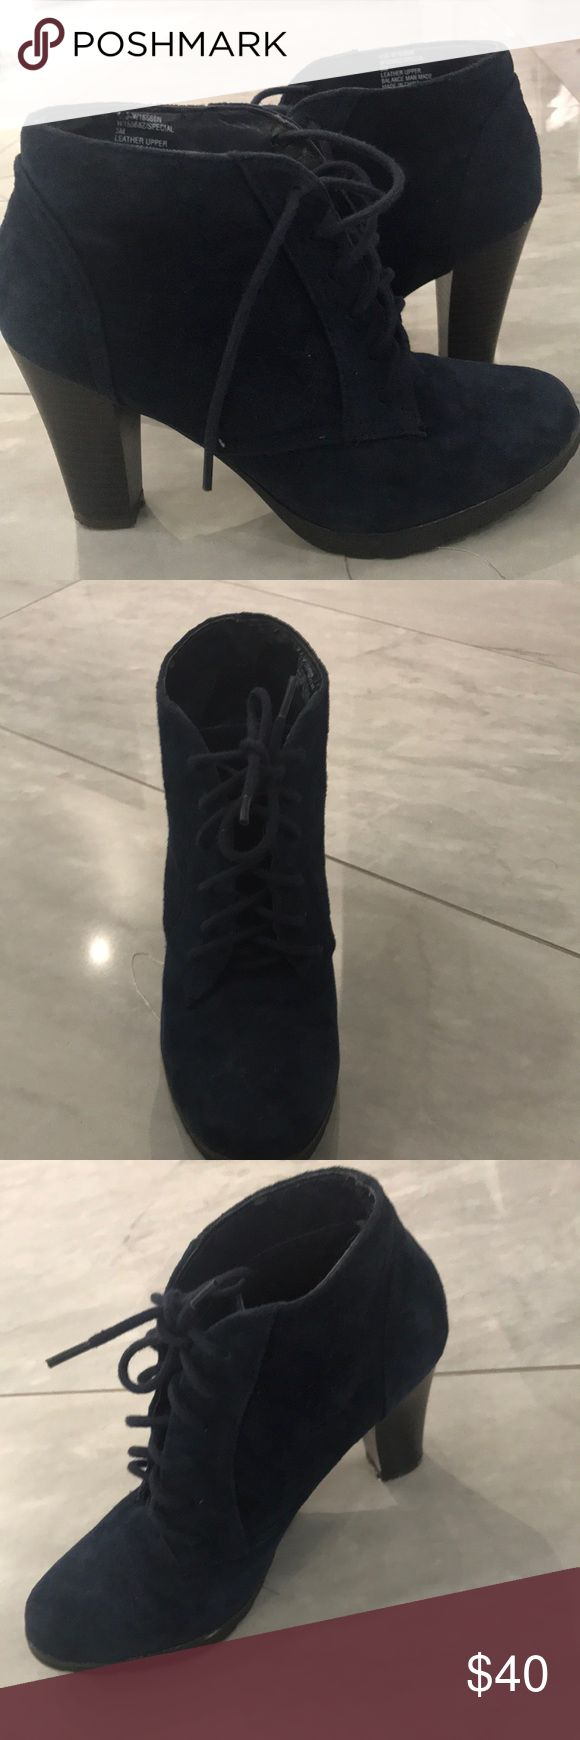 White Mountain Boots Dark blue booties (one time wear), 5M, very comfortable White Mountain Shoes Ankle Boots & Booties